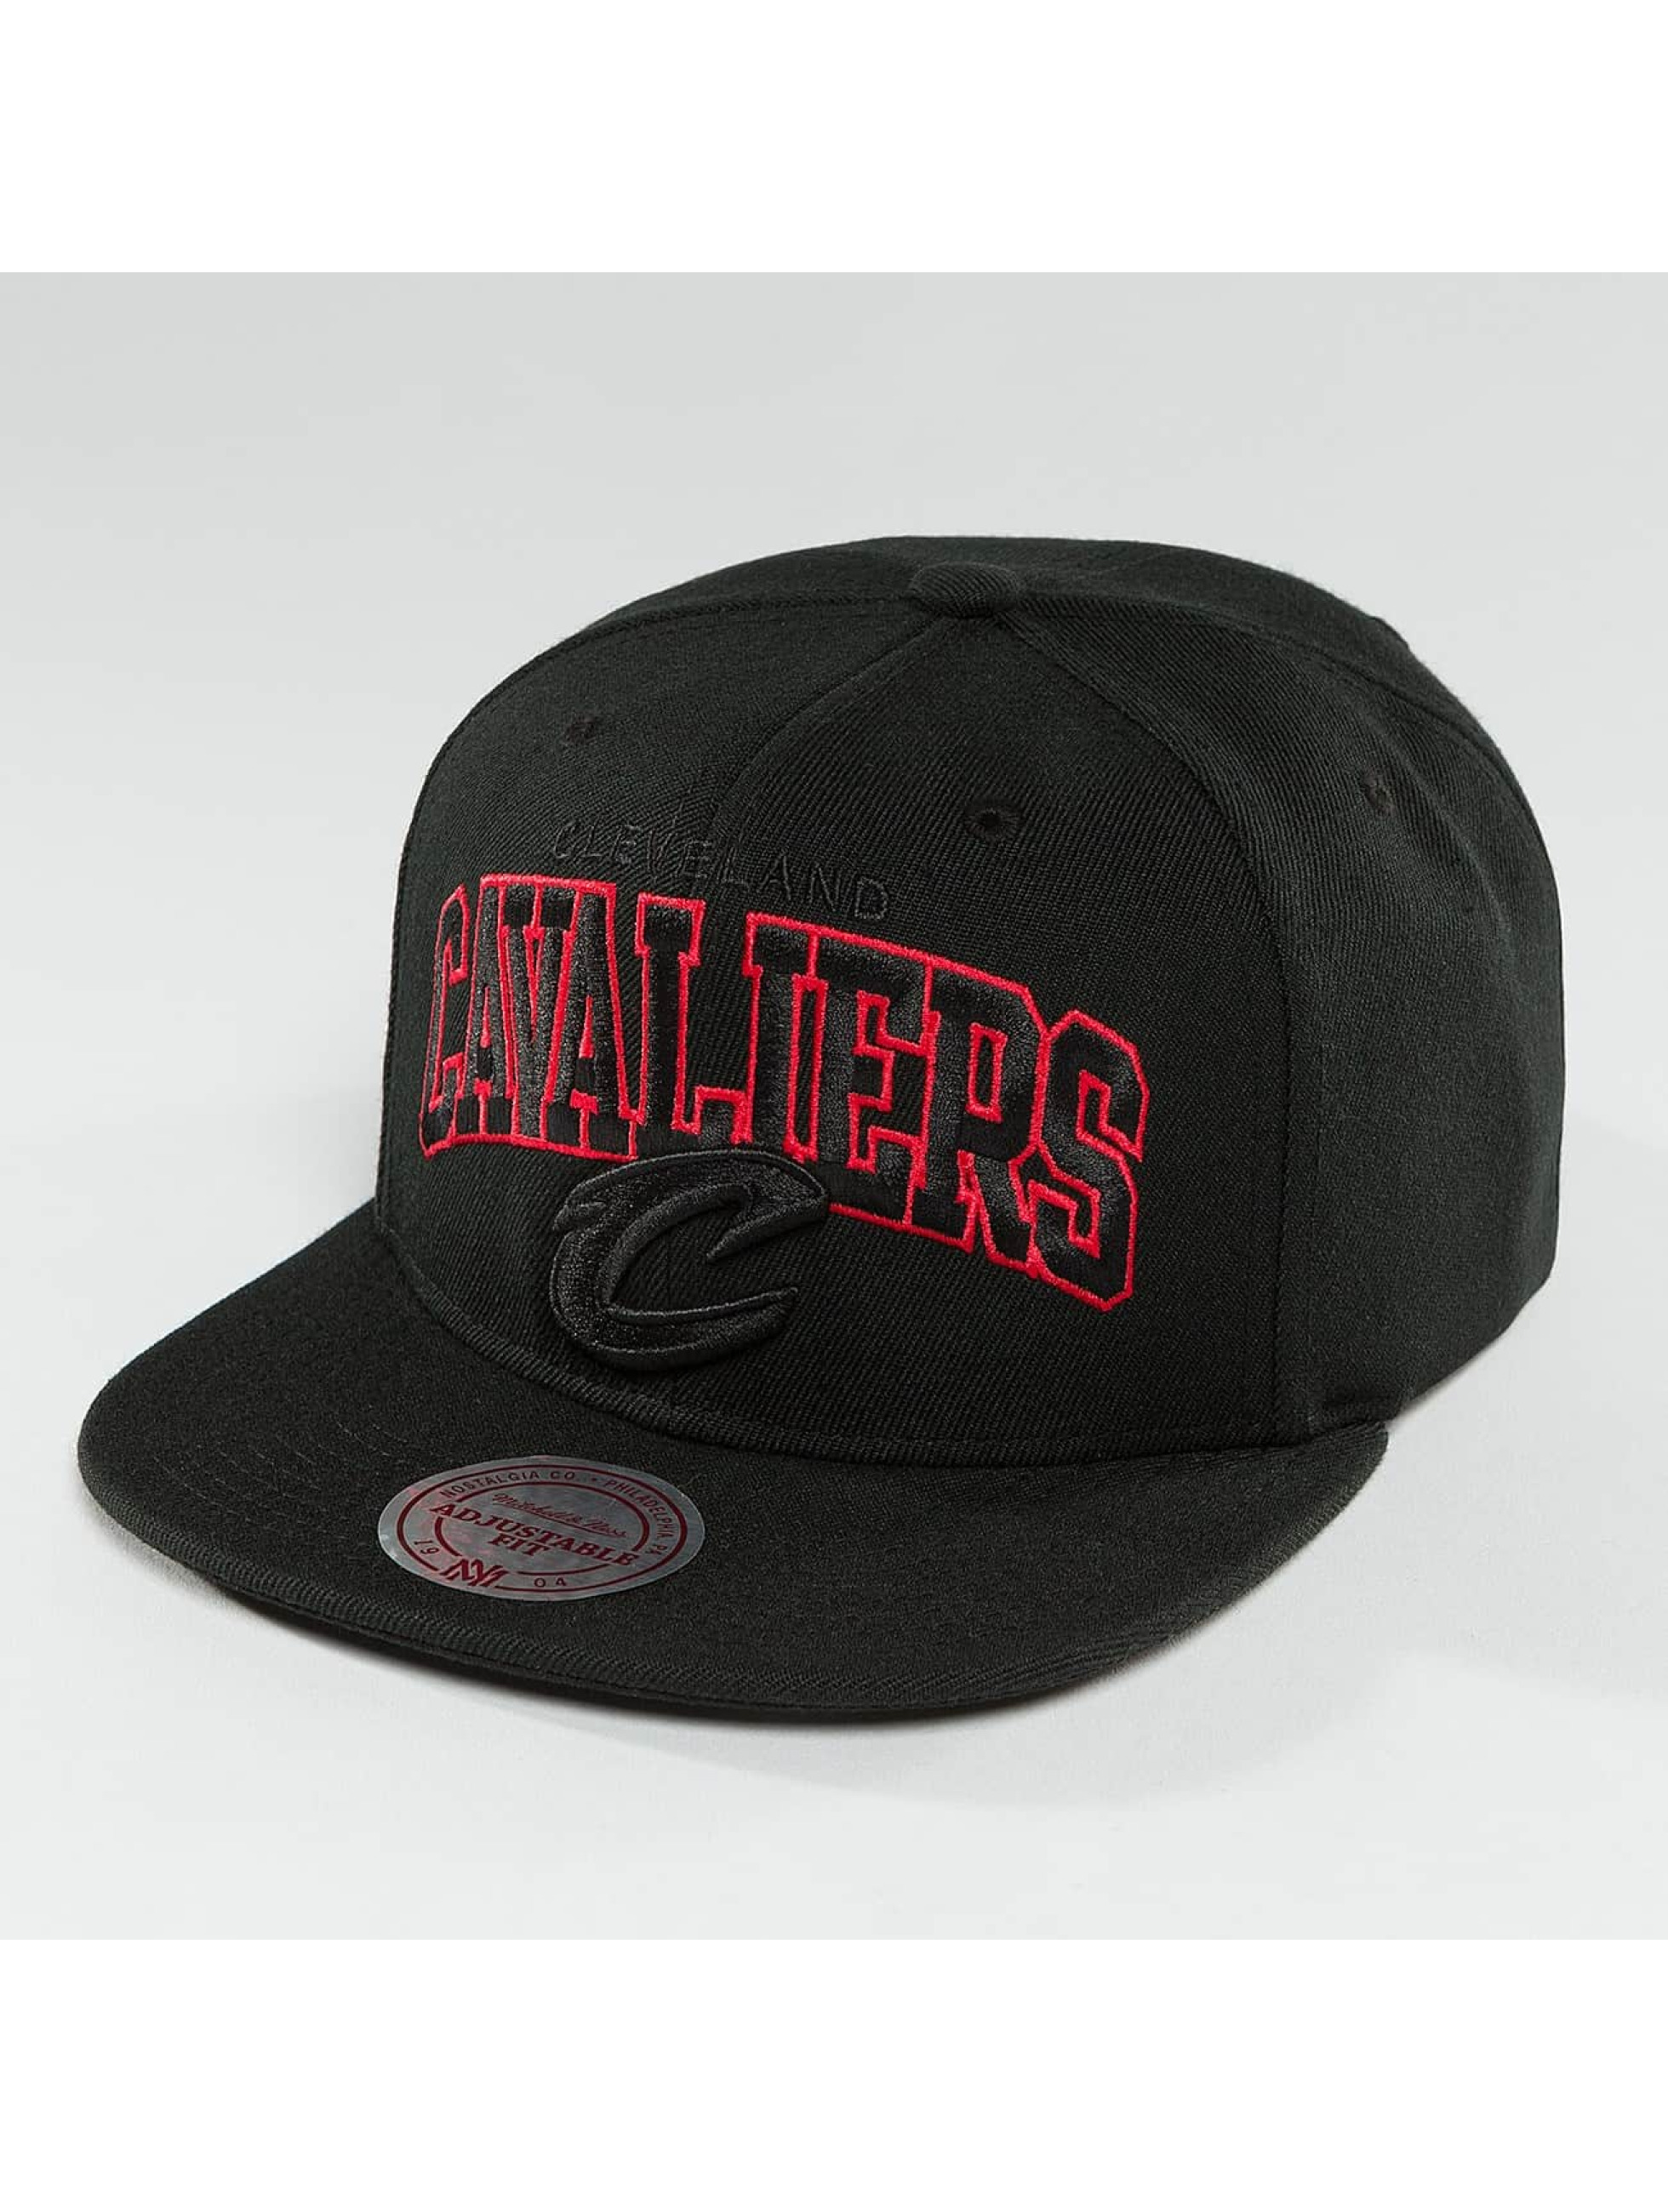 Mitchell & Ness Casquette Snapback & Strapback Red Pop Cleveland Cavaliers noir